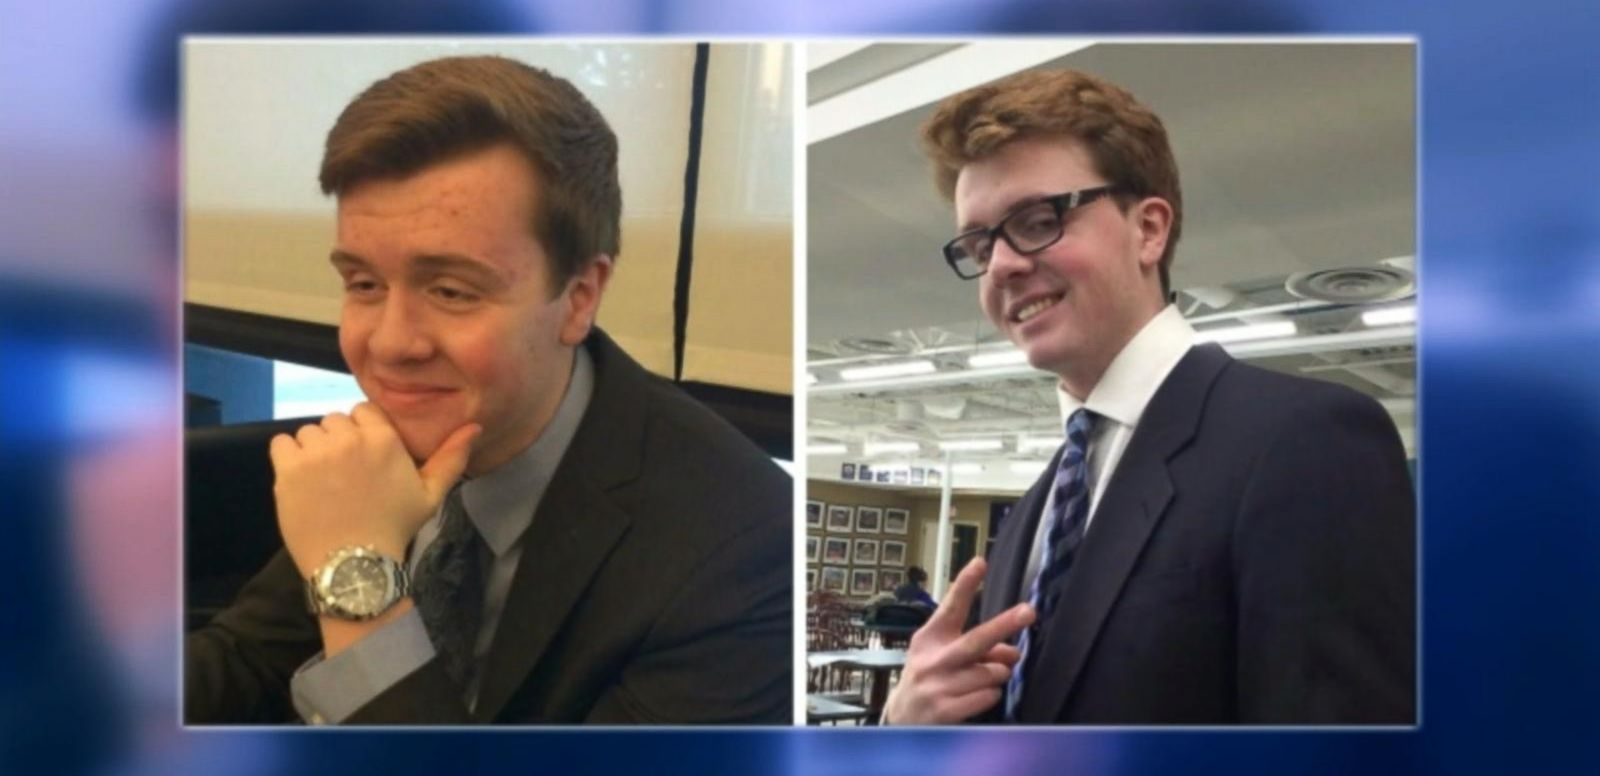 VIDEO: Twins Die in Tragic Bobsled Accident, 6 Other Injured